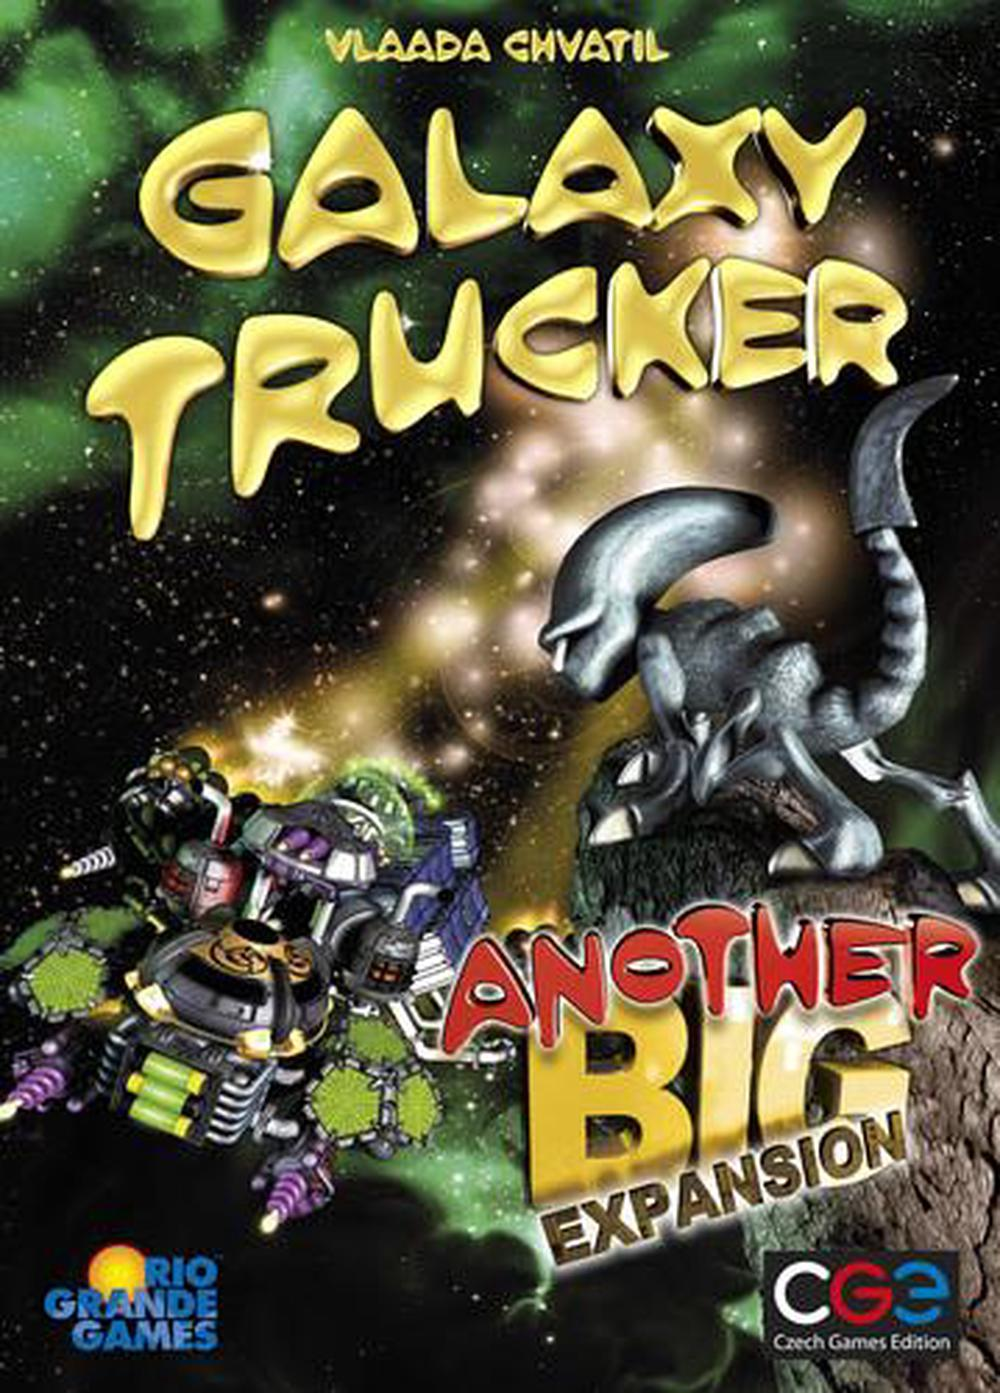 Czech Games Edition Galaxy Trucker - Another Big Expansion